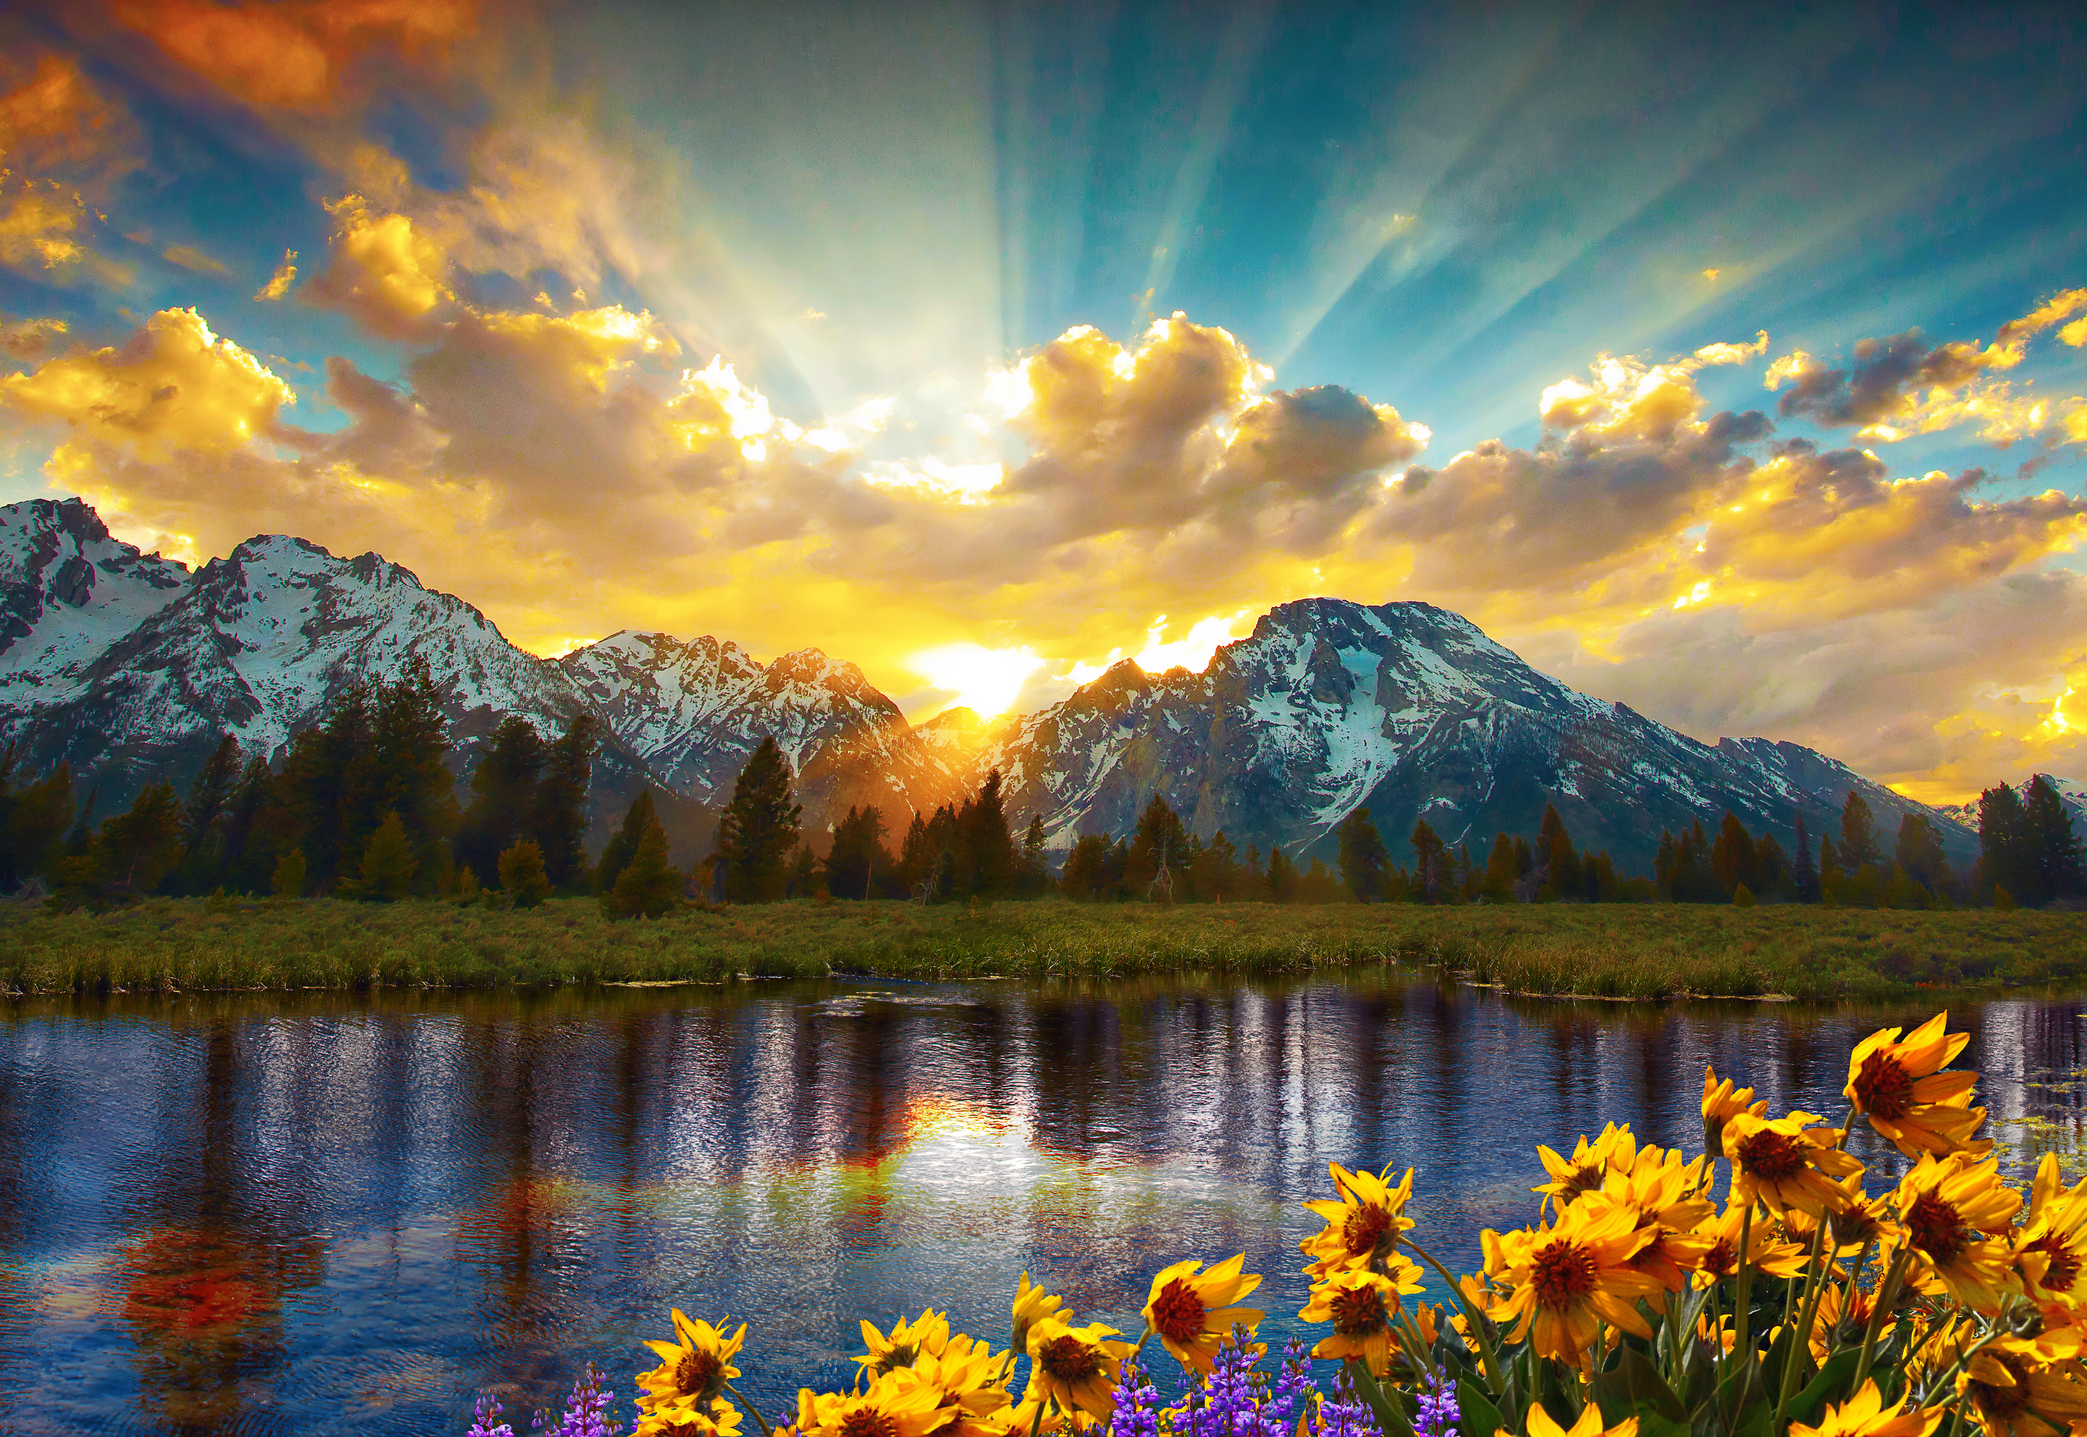 Sun rises over jagged mountains with flowers in foreground.